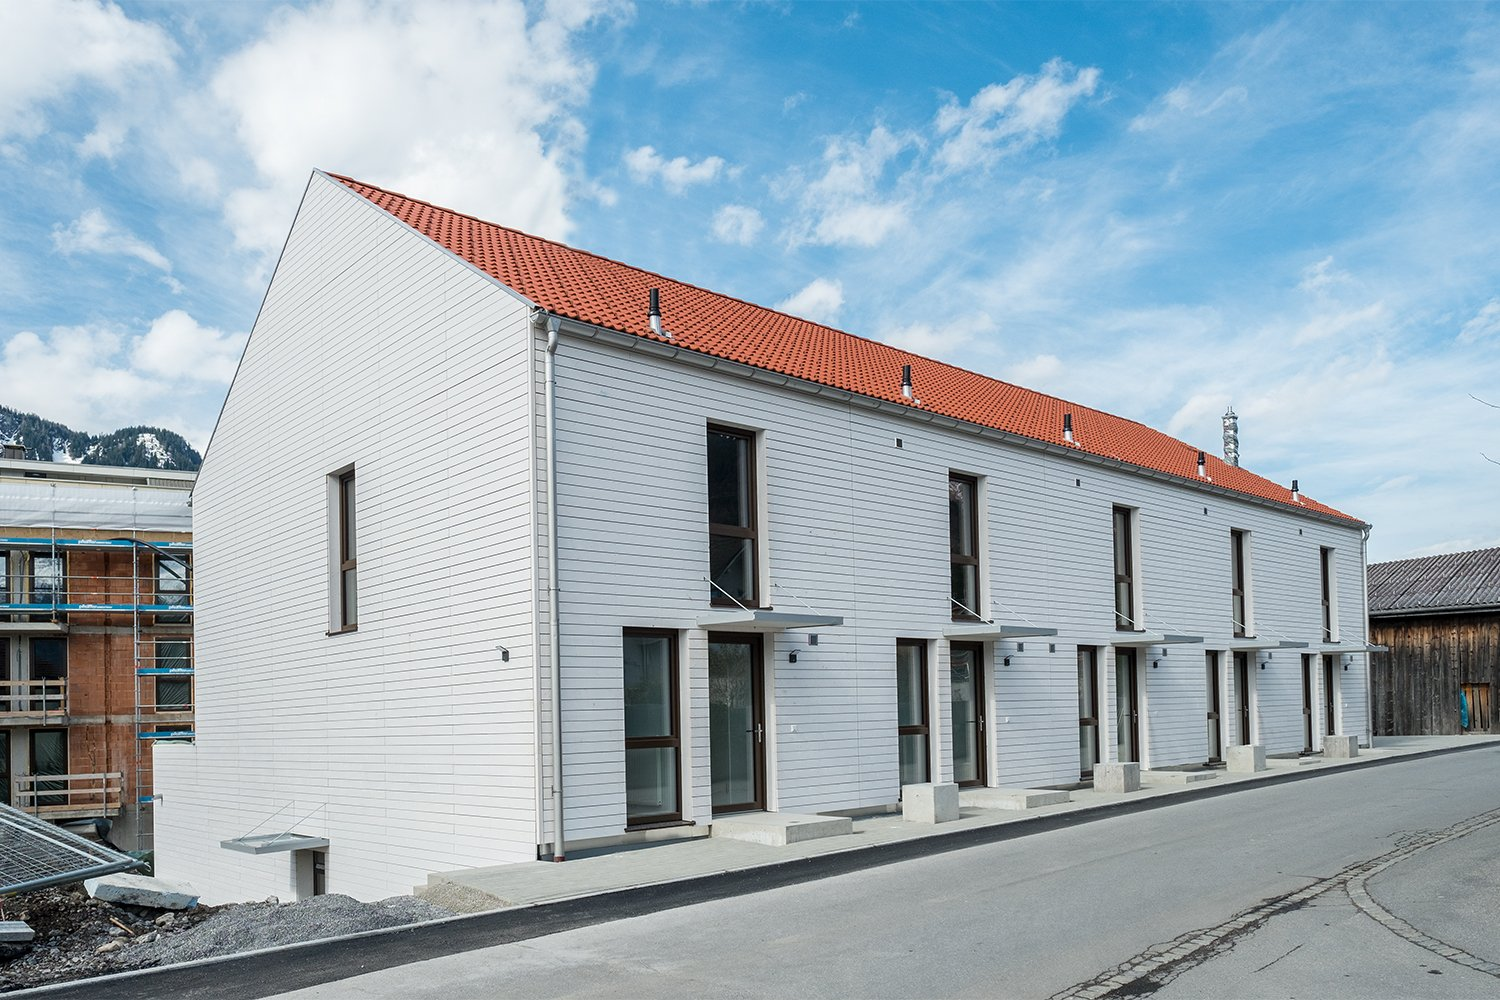 RIVA Home jetzt auch in Bludenz: Open house, am 21.4.2018